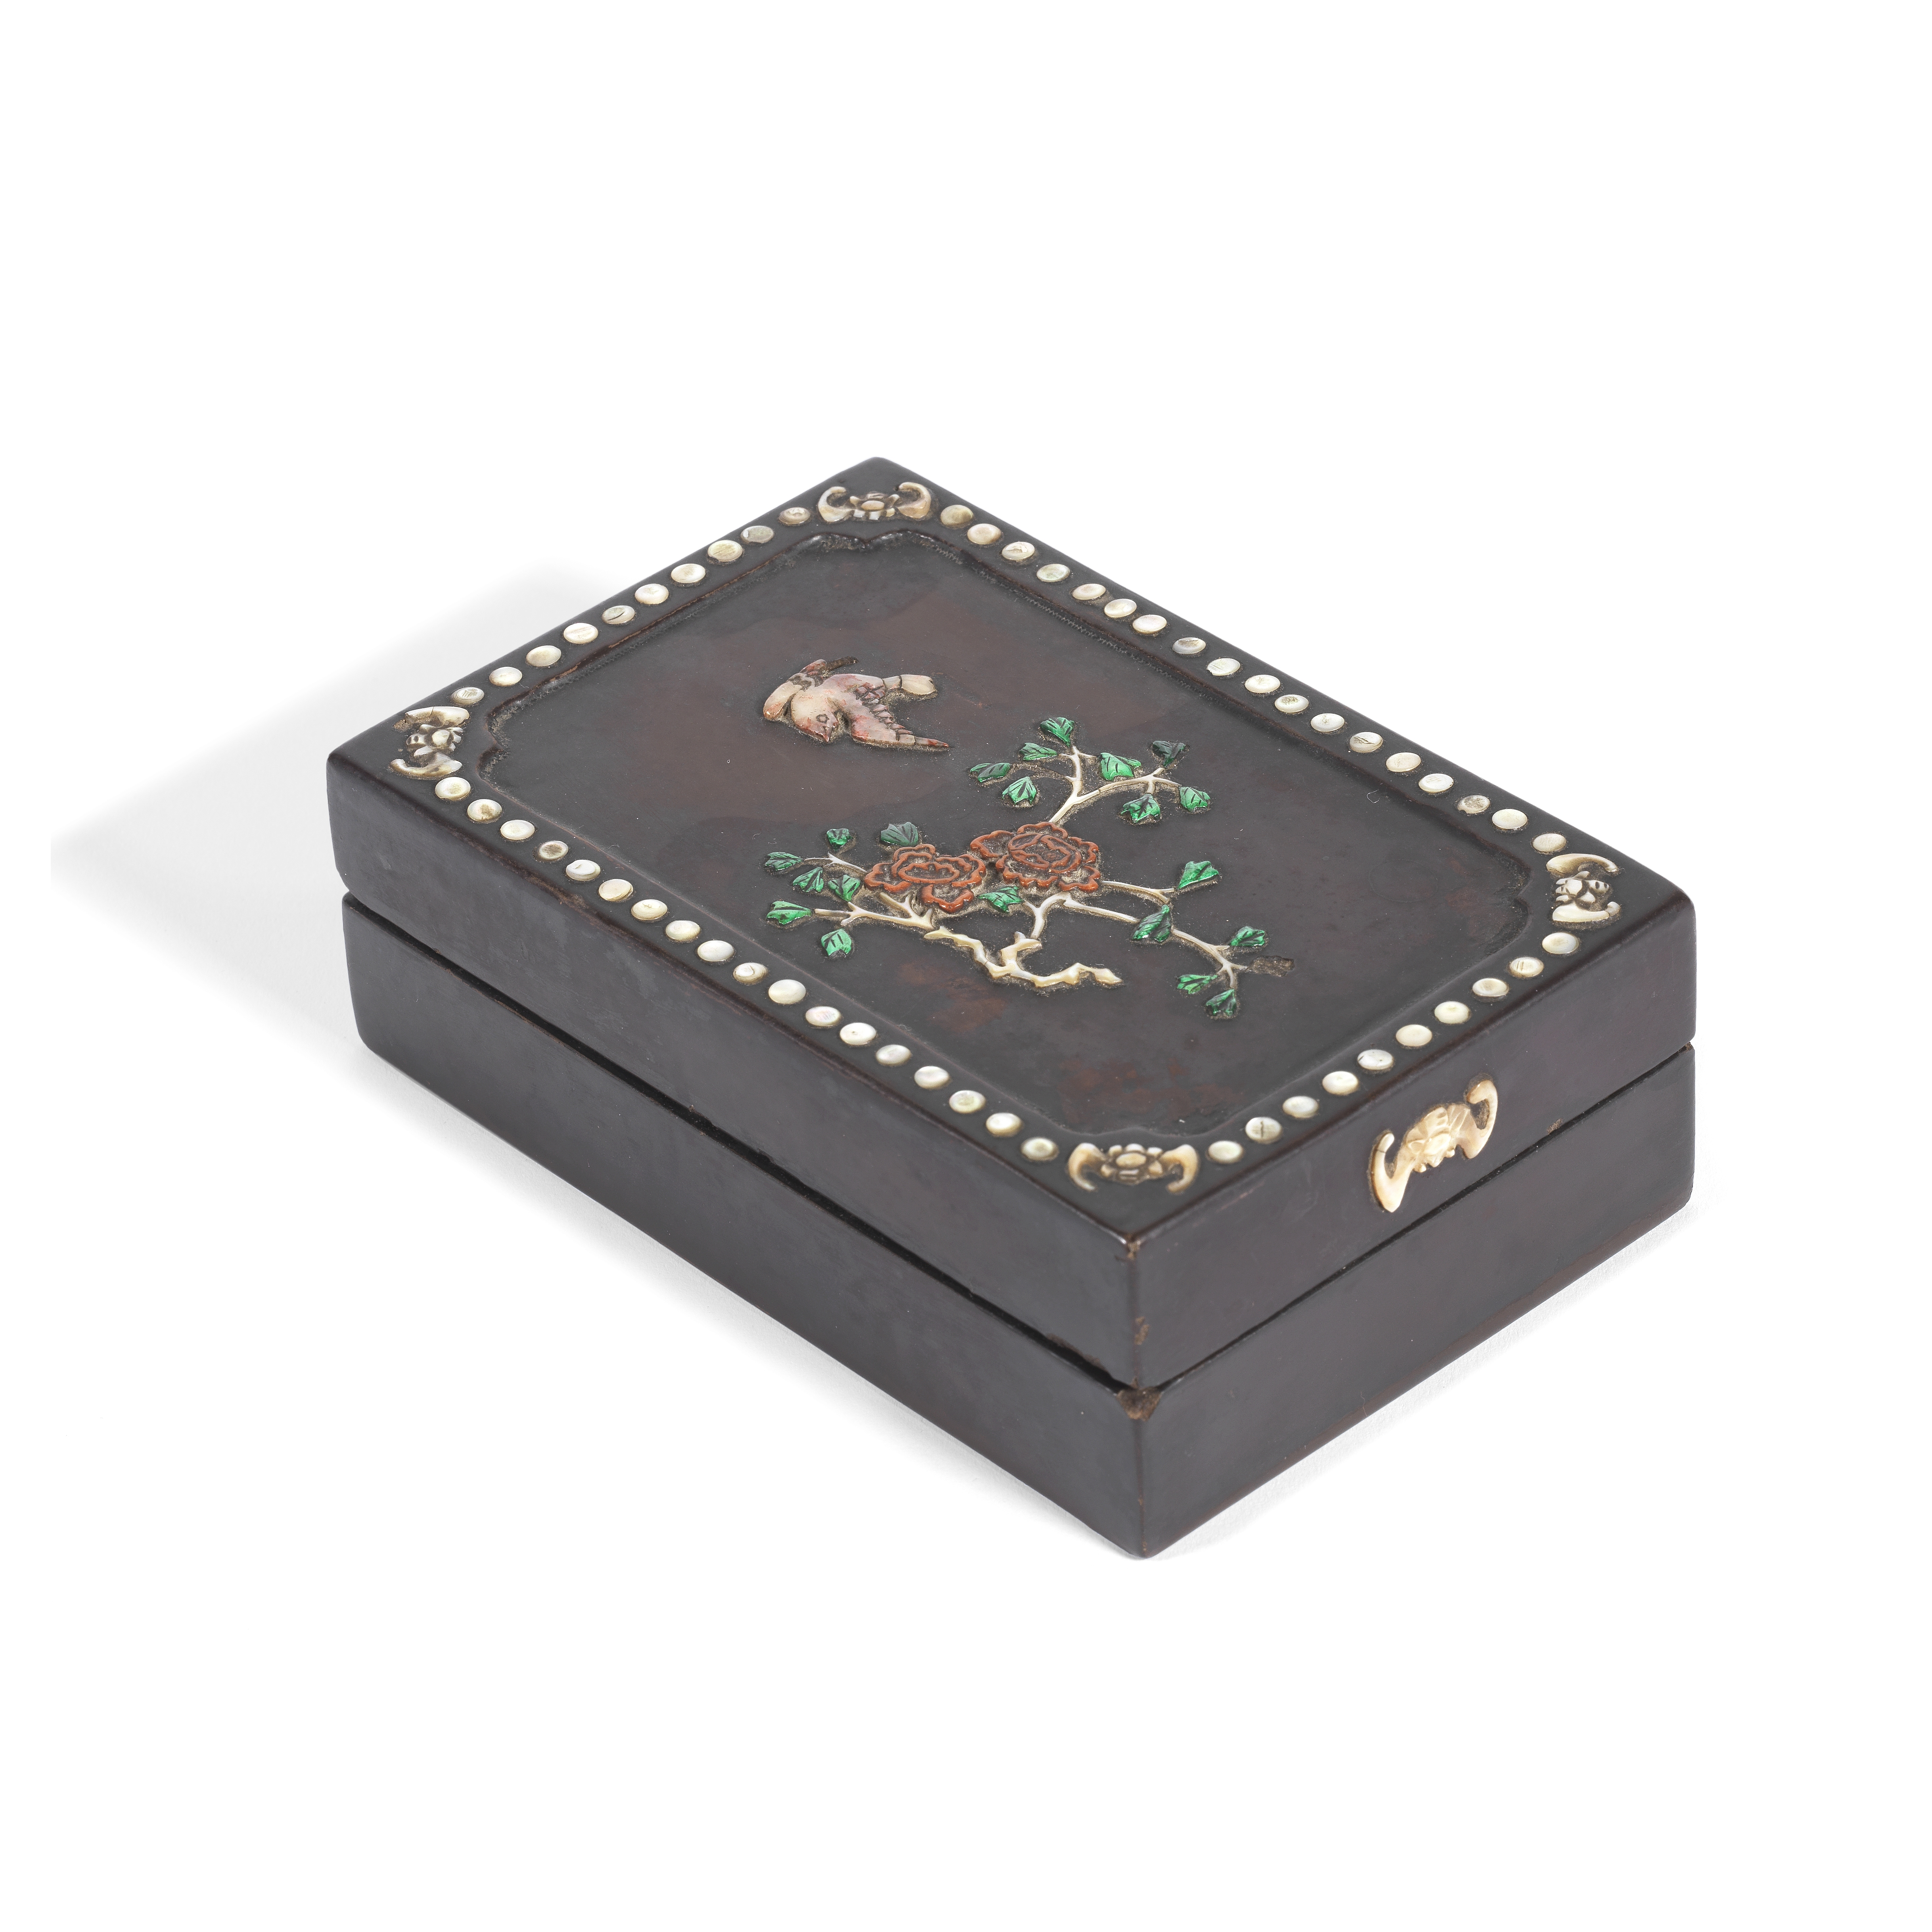 A RECTANGULAR MOTHER-OF-PEARL AND HARDSTONE-INLAID LACQUER BOX AND COVER 19th century (2)